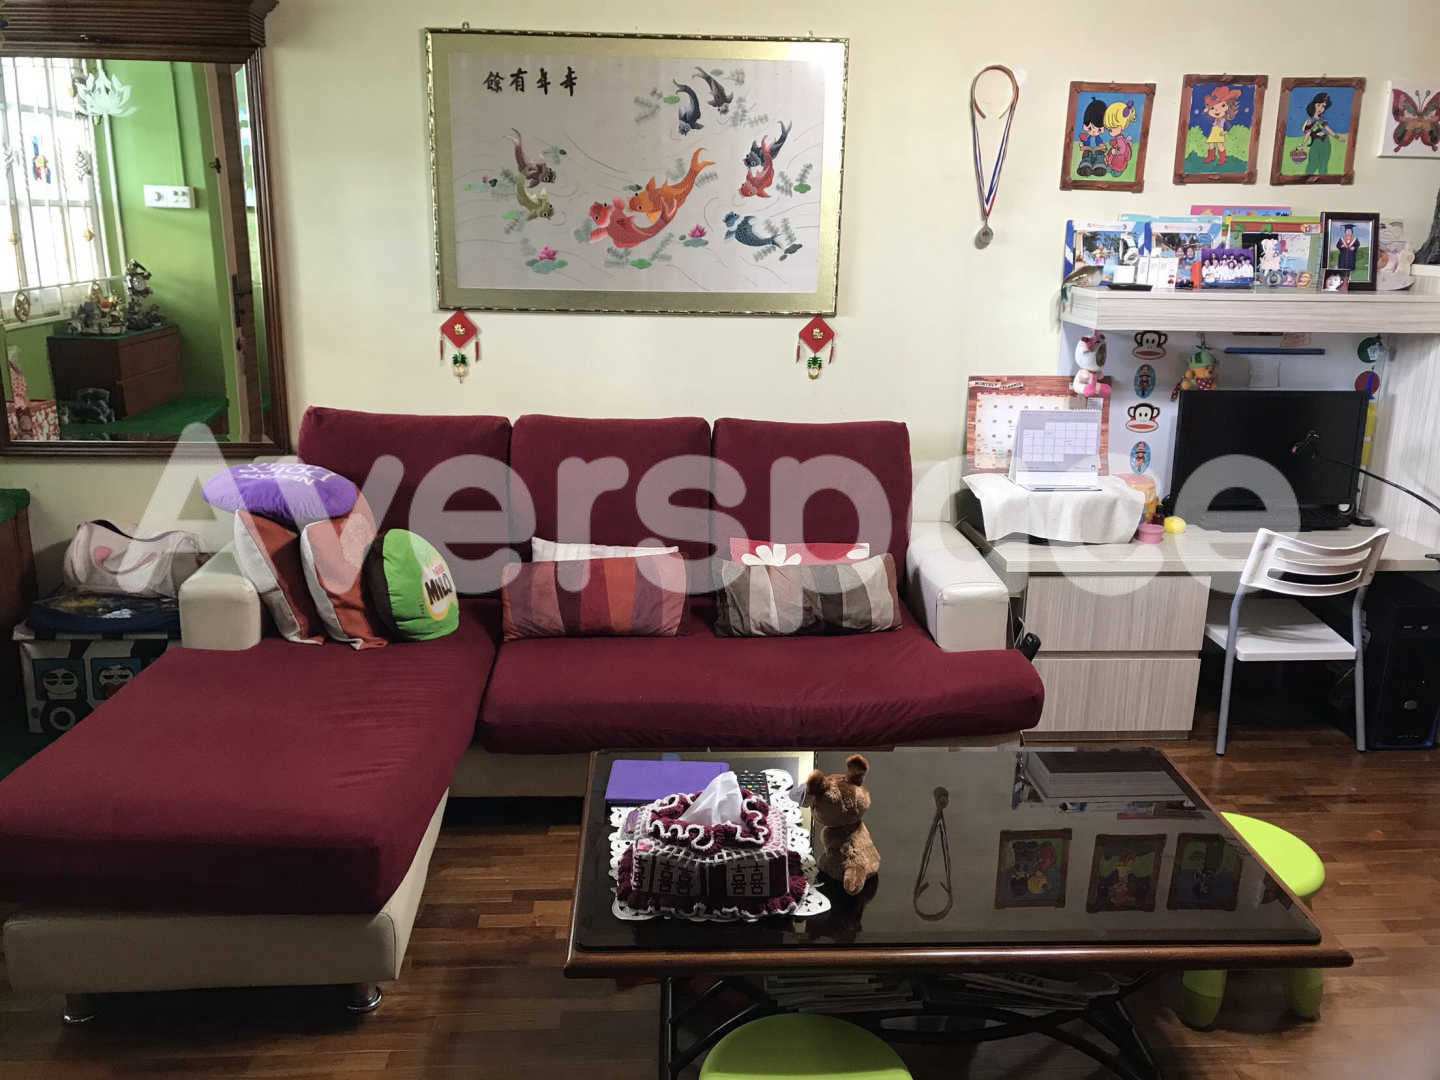 526 Bedok North Street 3, District 16 Singapore